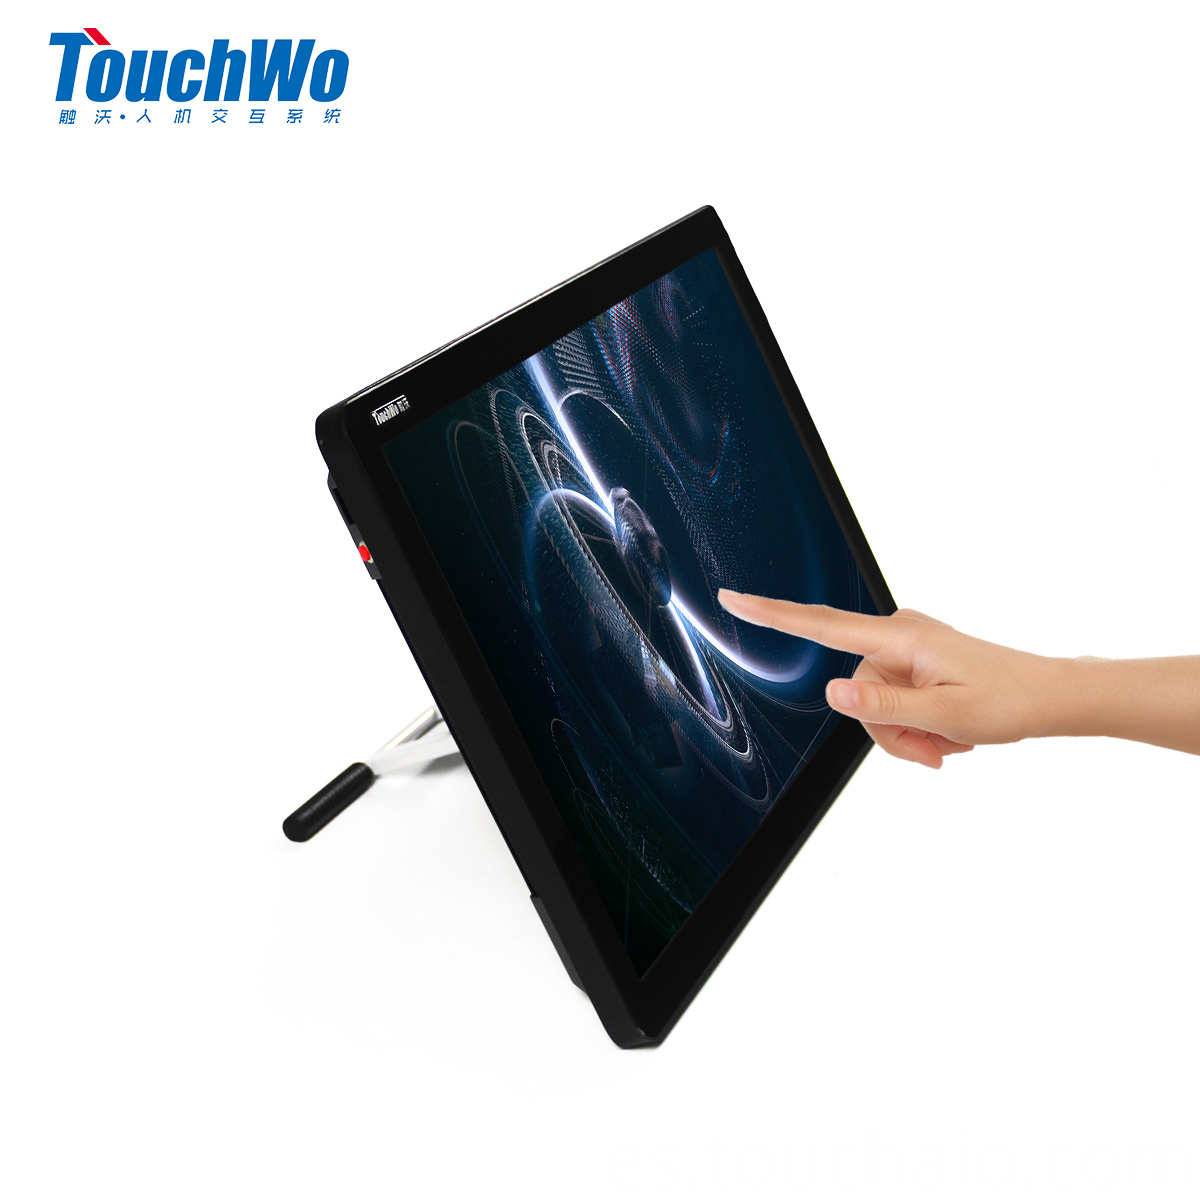 21.5 touch pc